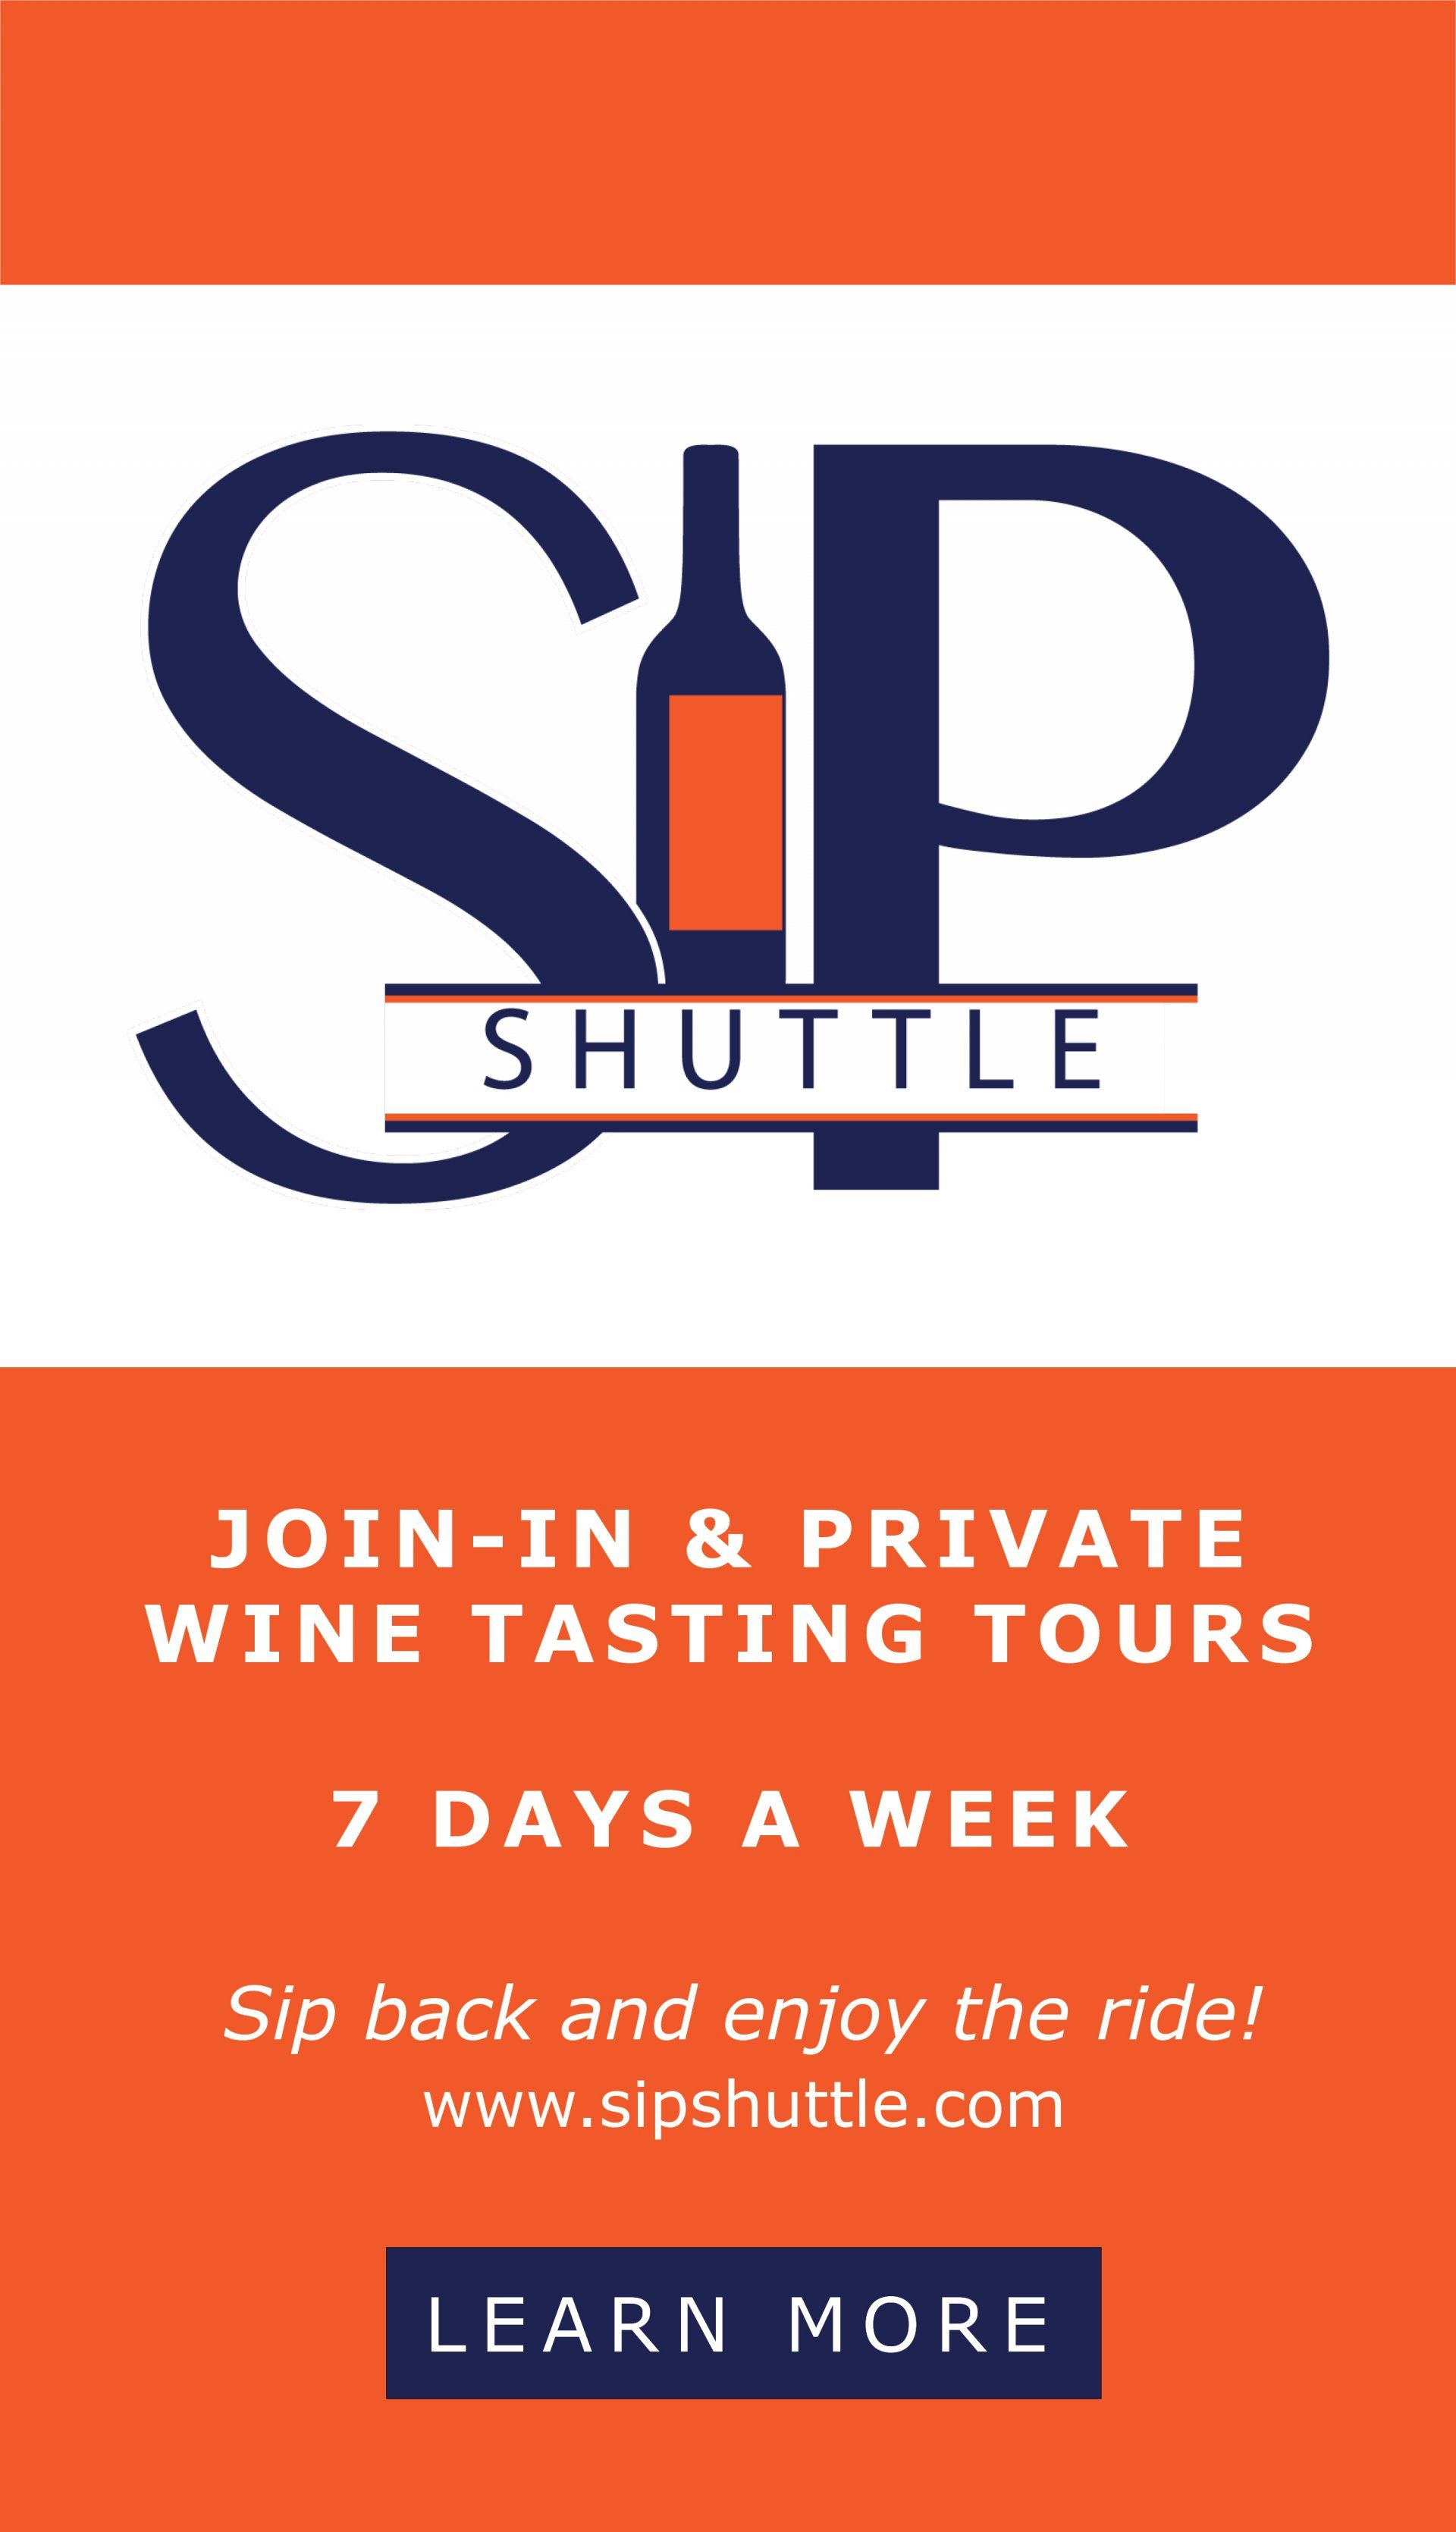 Sip Shuttle Web Ad Wine Tour Wine Tasting Tours Wine Tasting